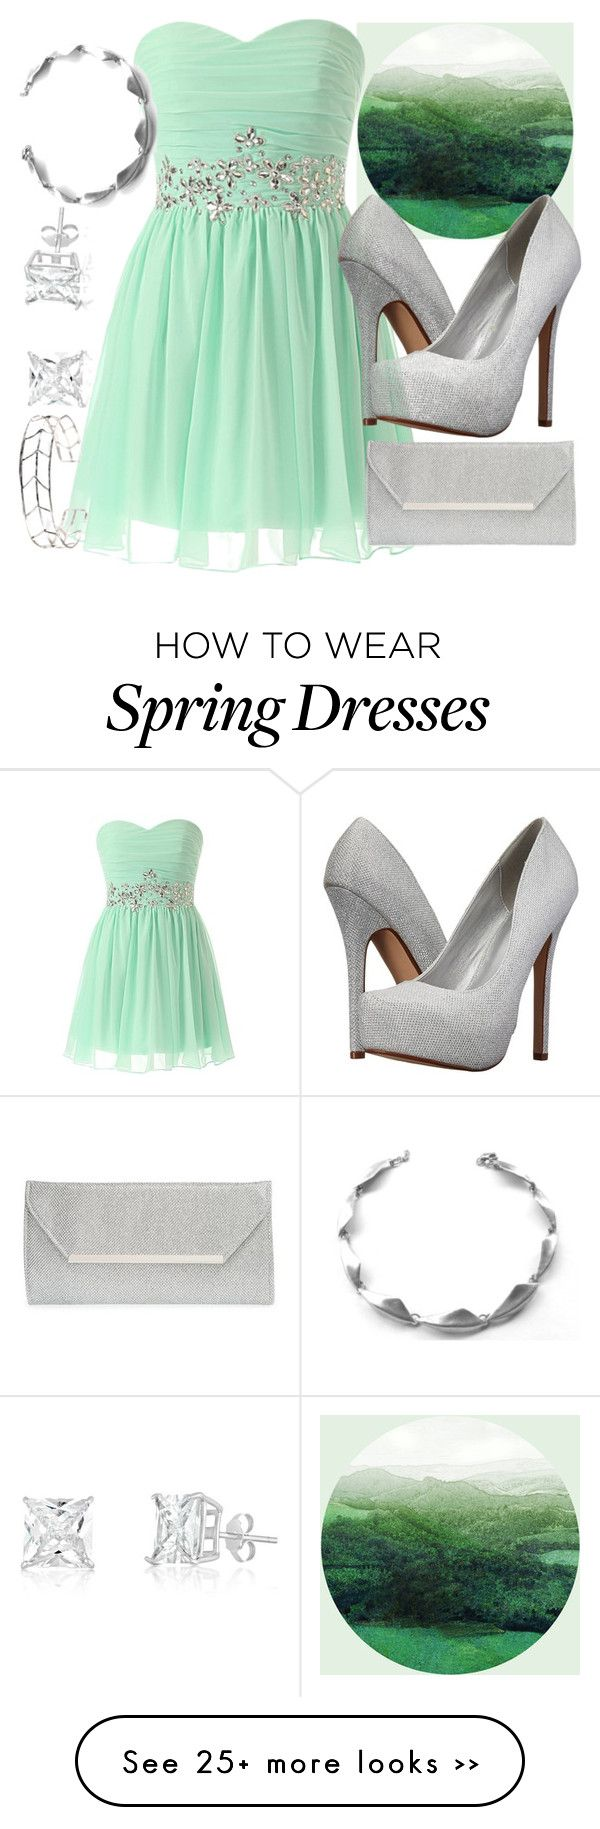 """A ~Minty~ Date"" by jlol on Polyvore"